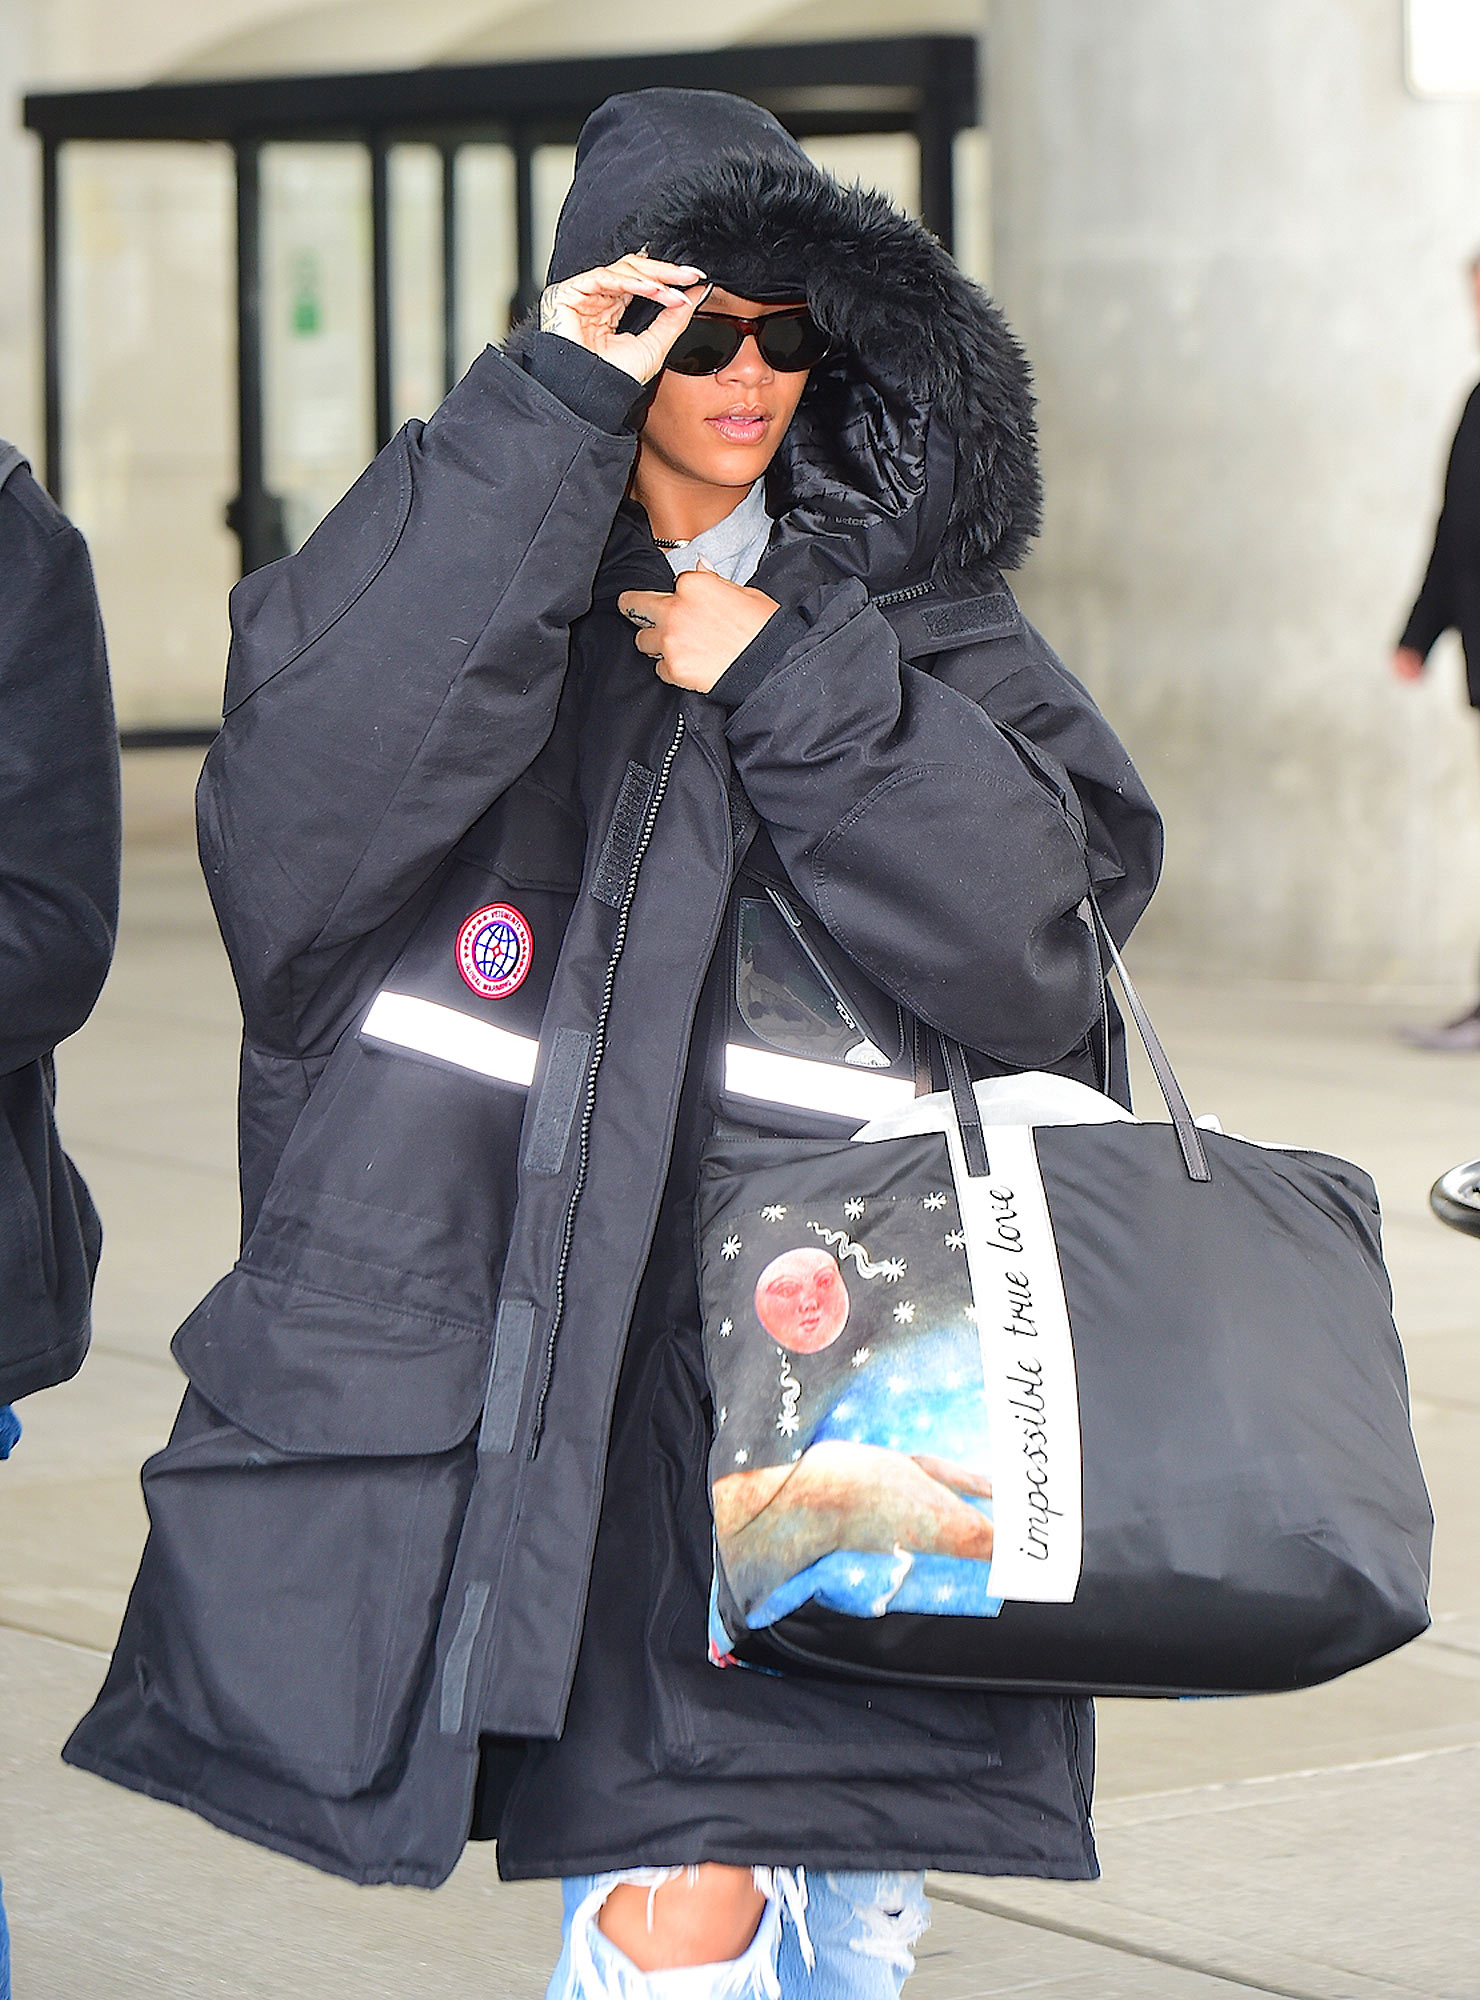 Rihanna Wears the World's Largest North Face Jacket as she flies into NYC from Paris